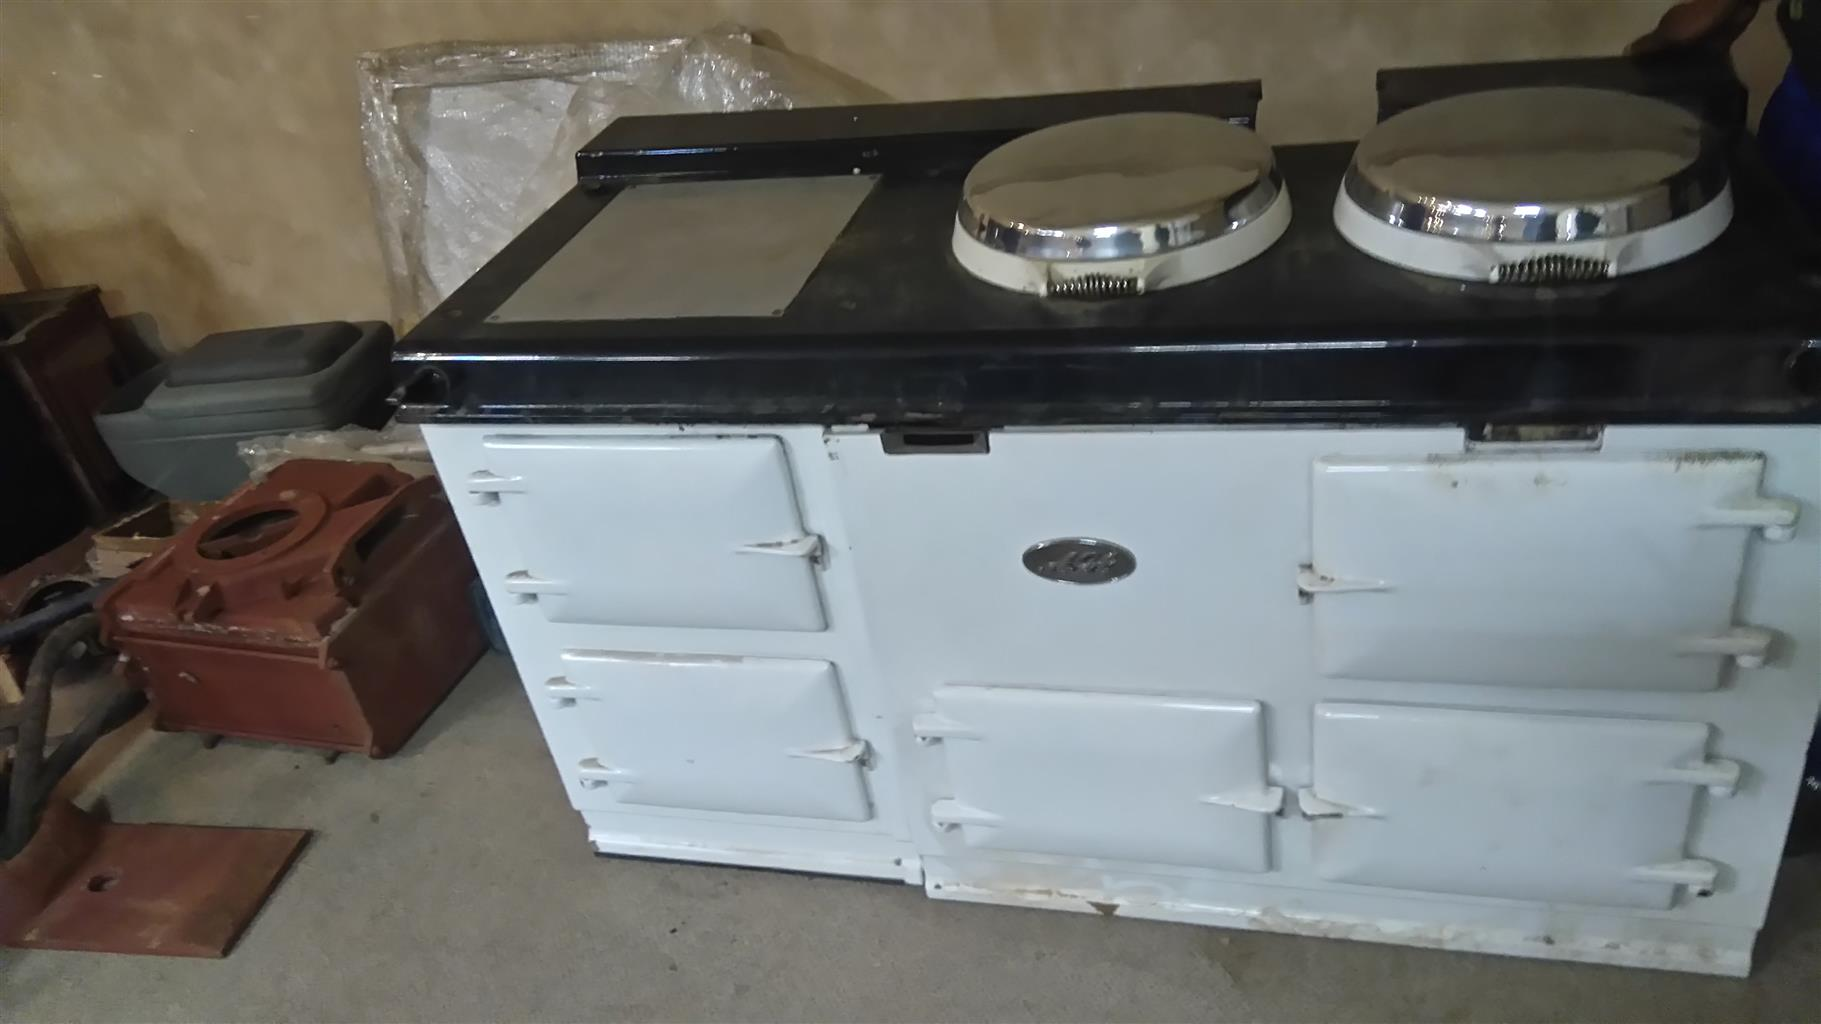 Aga de luxe stove a have to for your family home